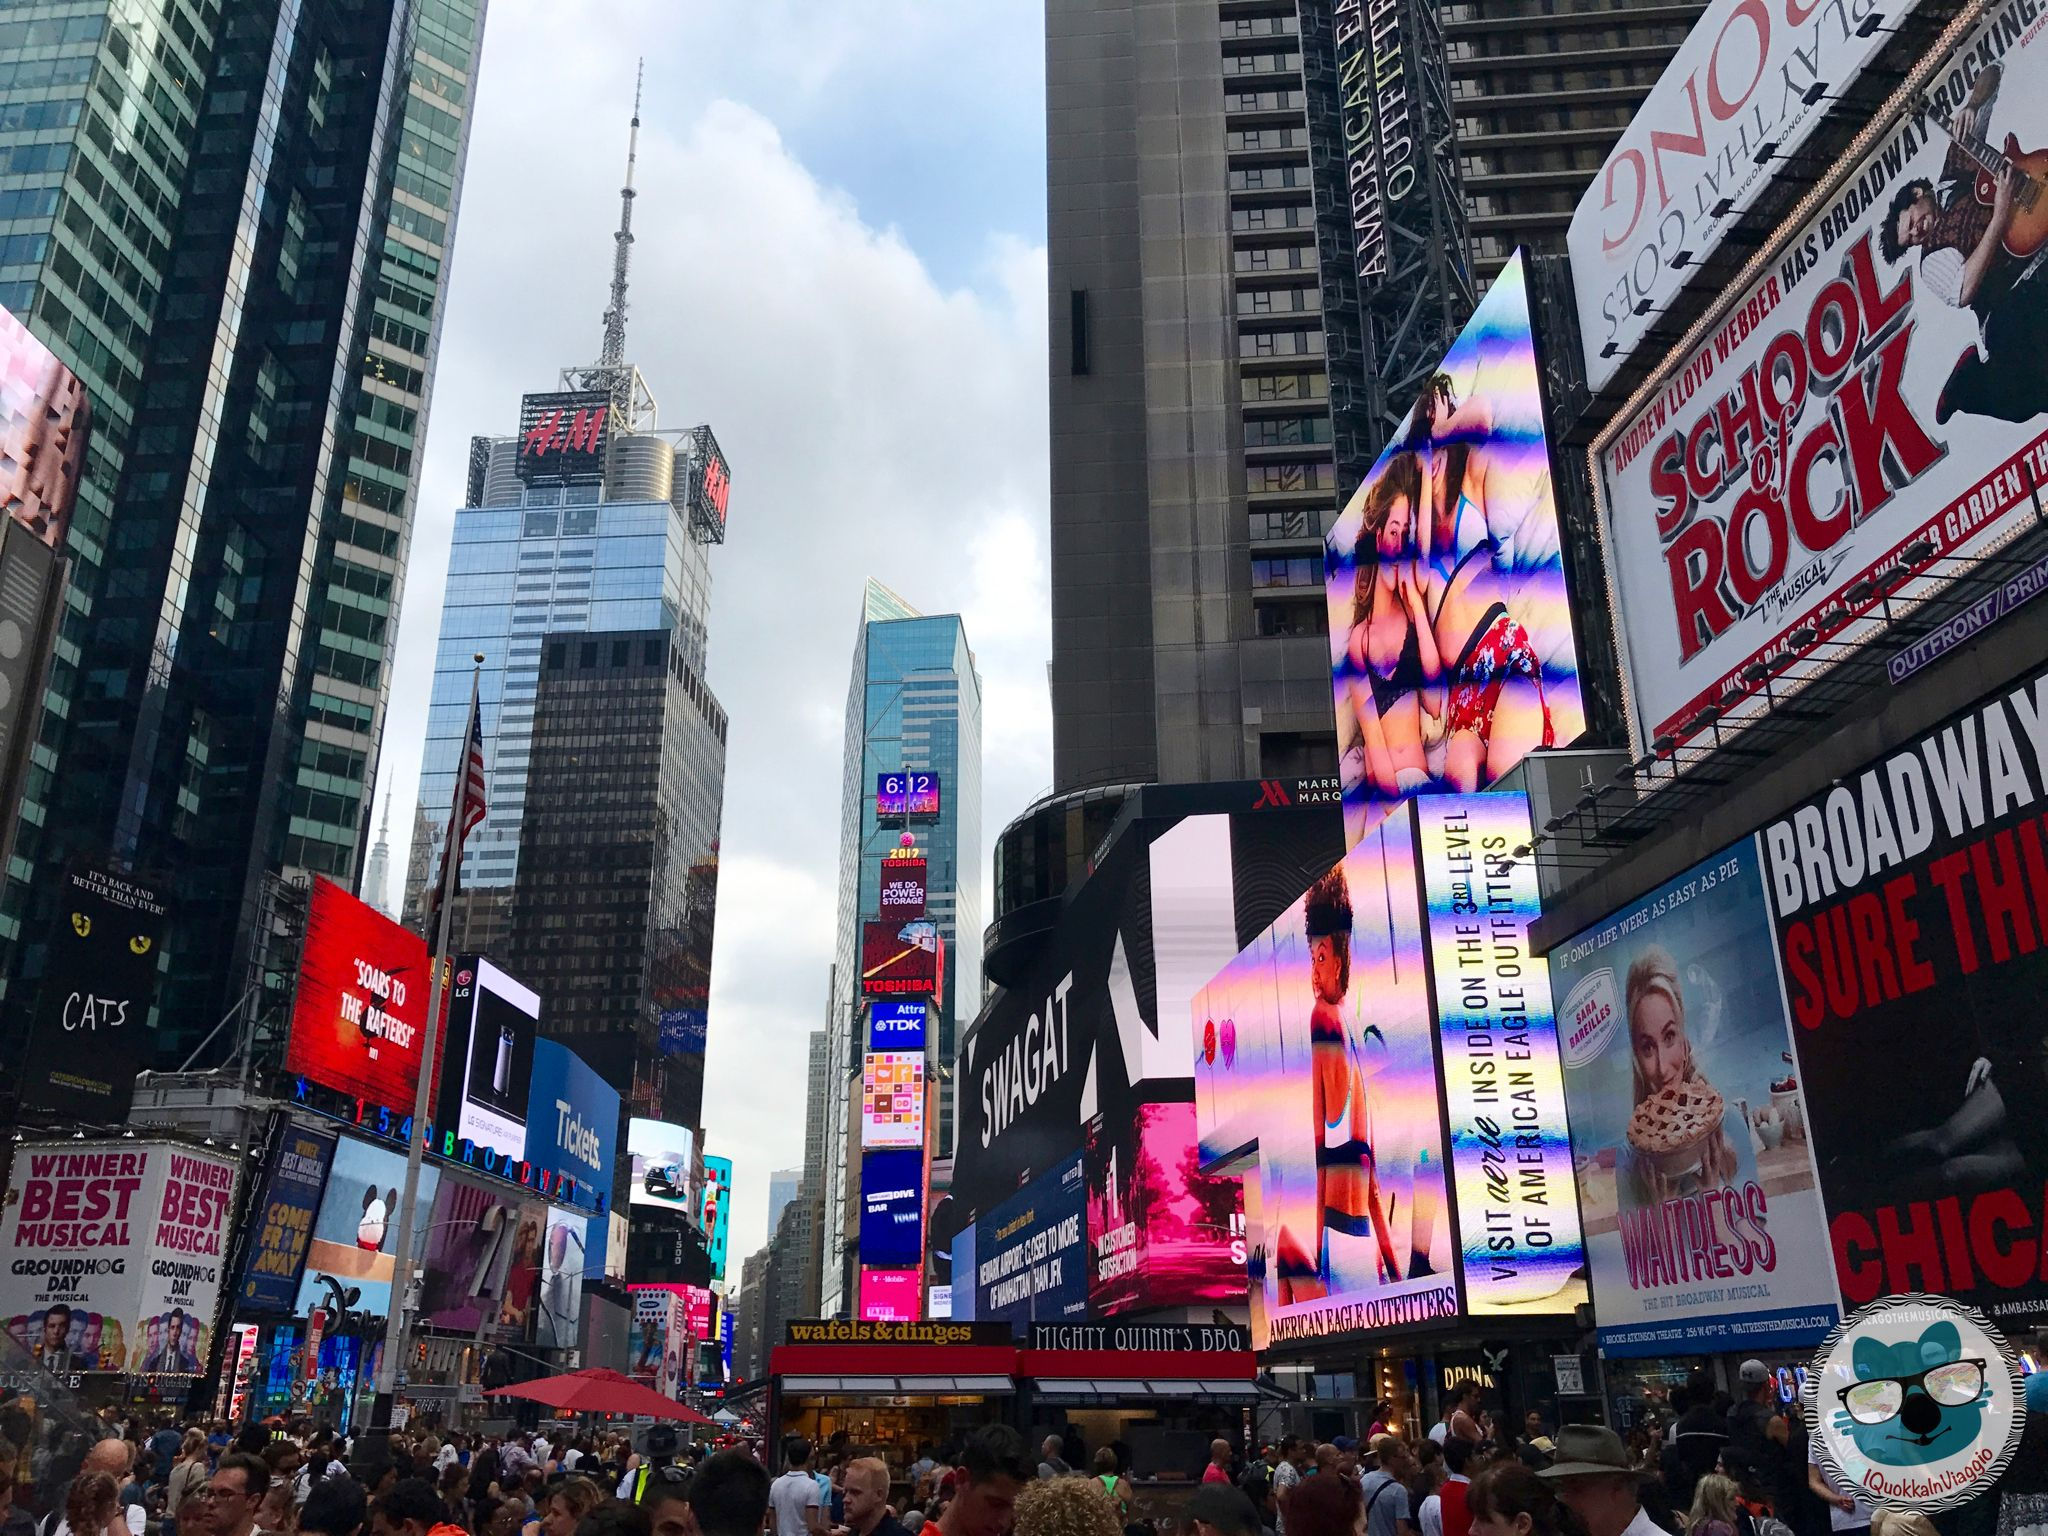 Amo New York dating spettacolo